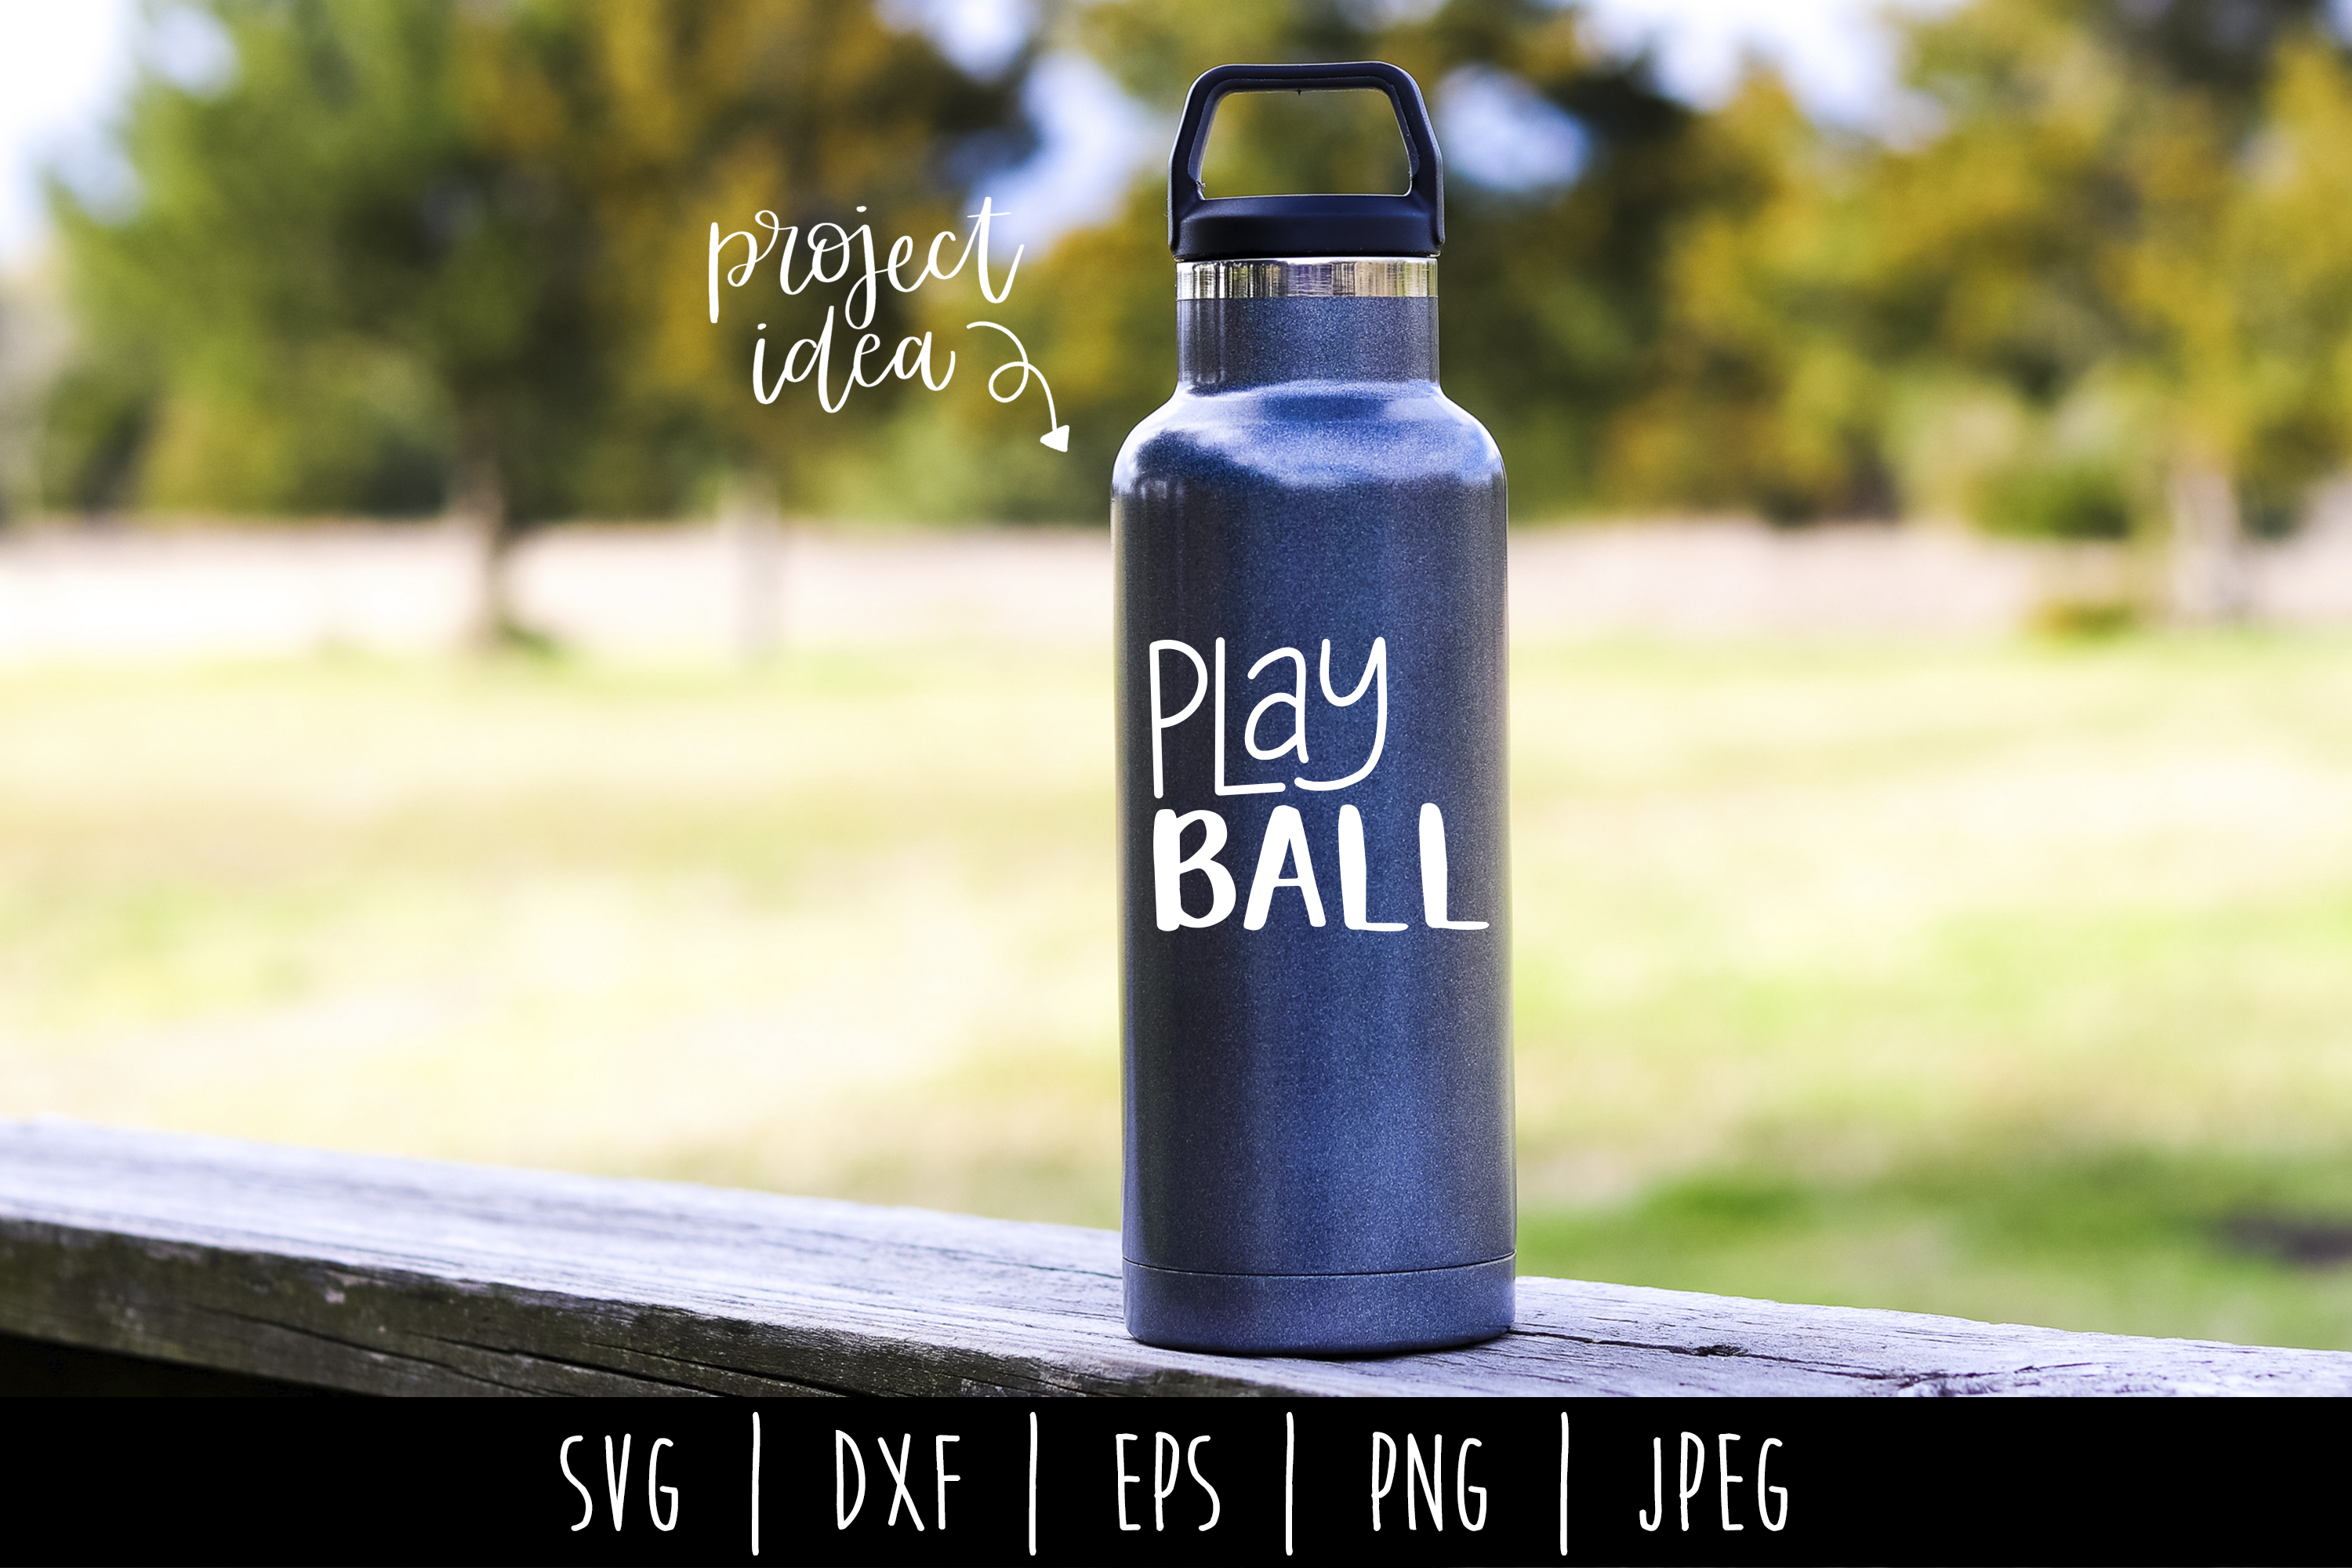 Play Ball SVG, DXF, EPS, PNG, JPEG example image 1